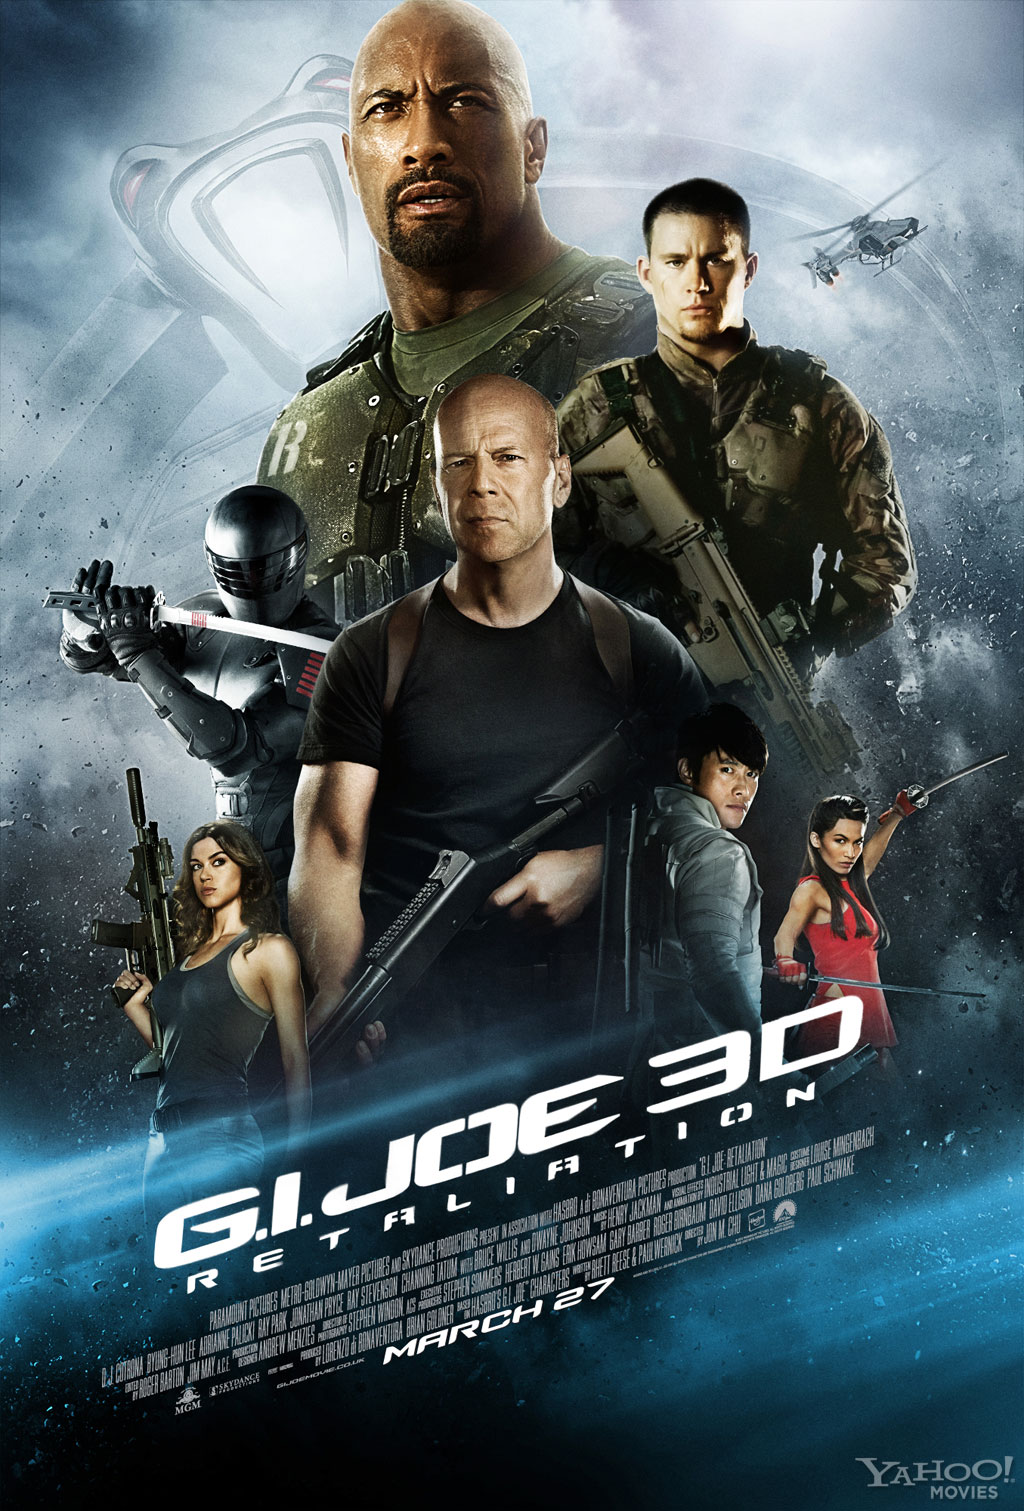 g i  joe retaliation wallpapers - 37 G.I. Joe Retaliation HD Wallpapers Backgrounds